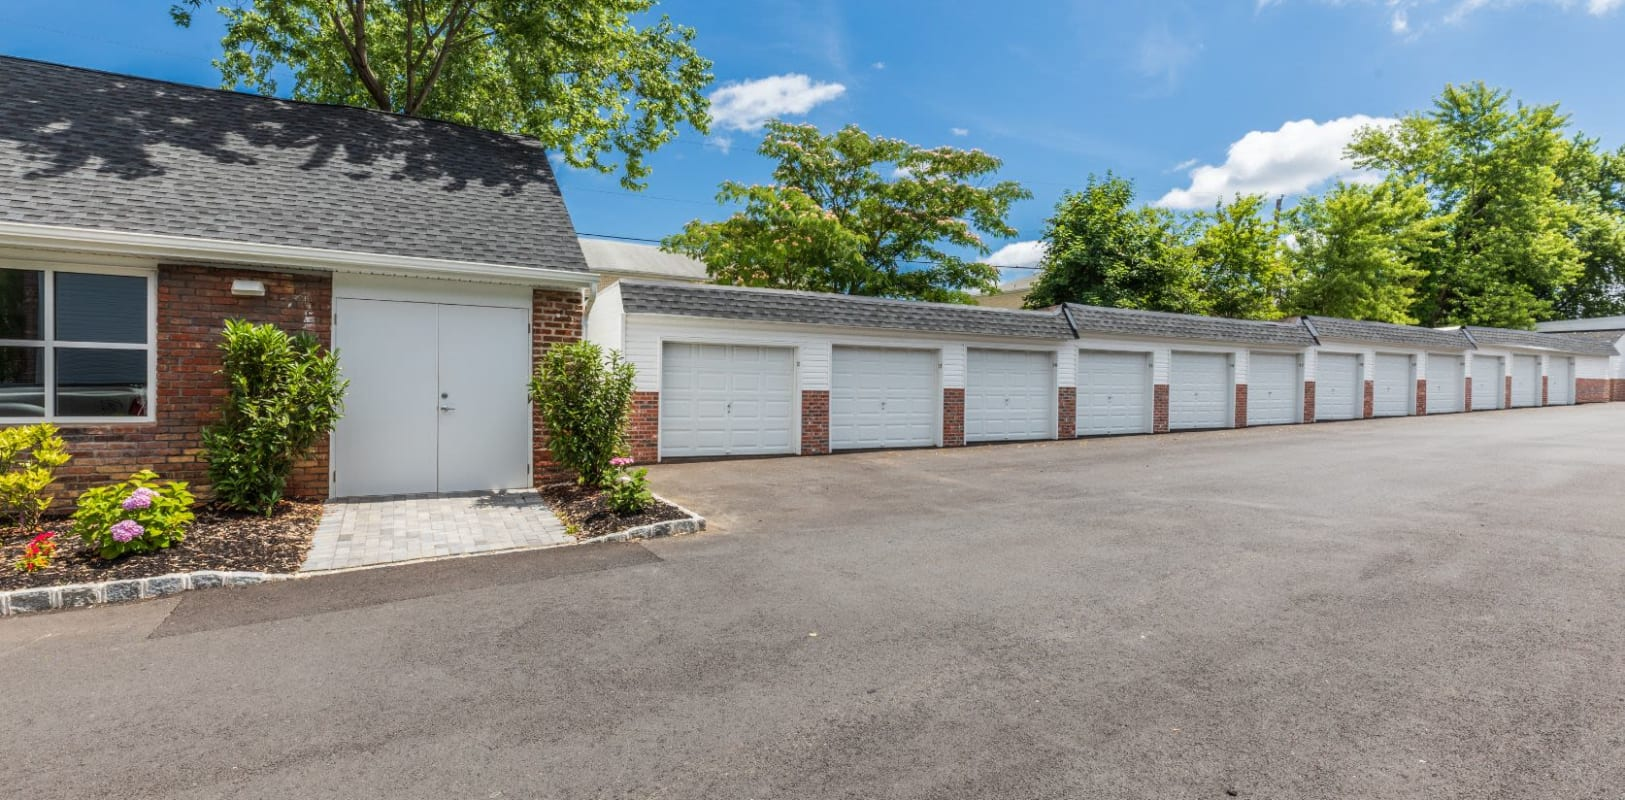 Garages available at Nieuw Amsterdam Village in South Amboy, New Jersey